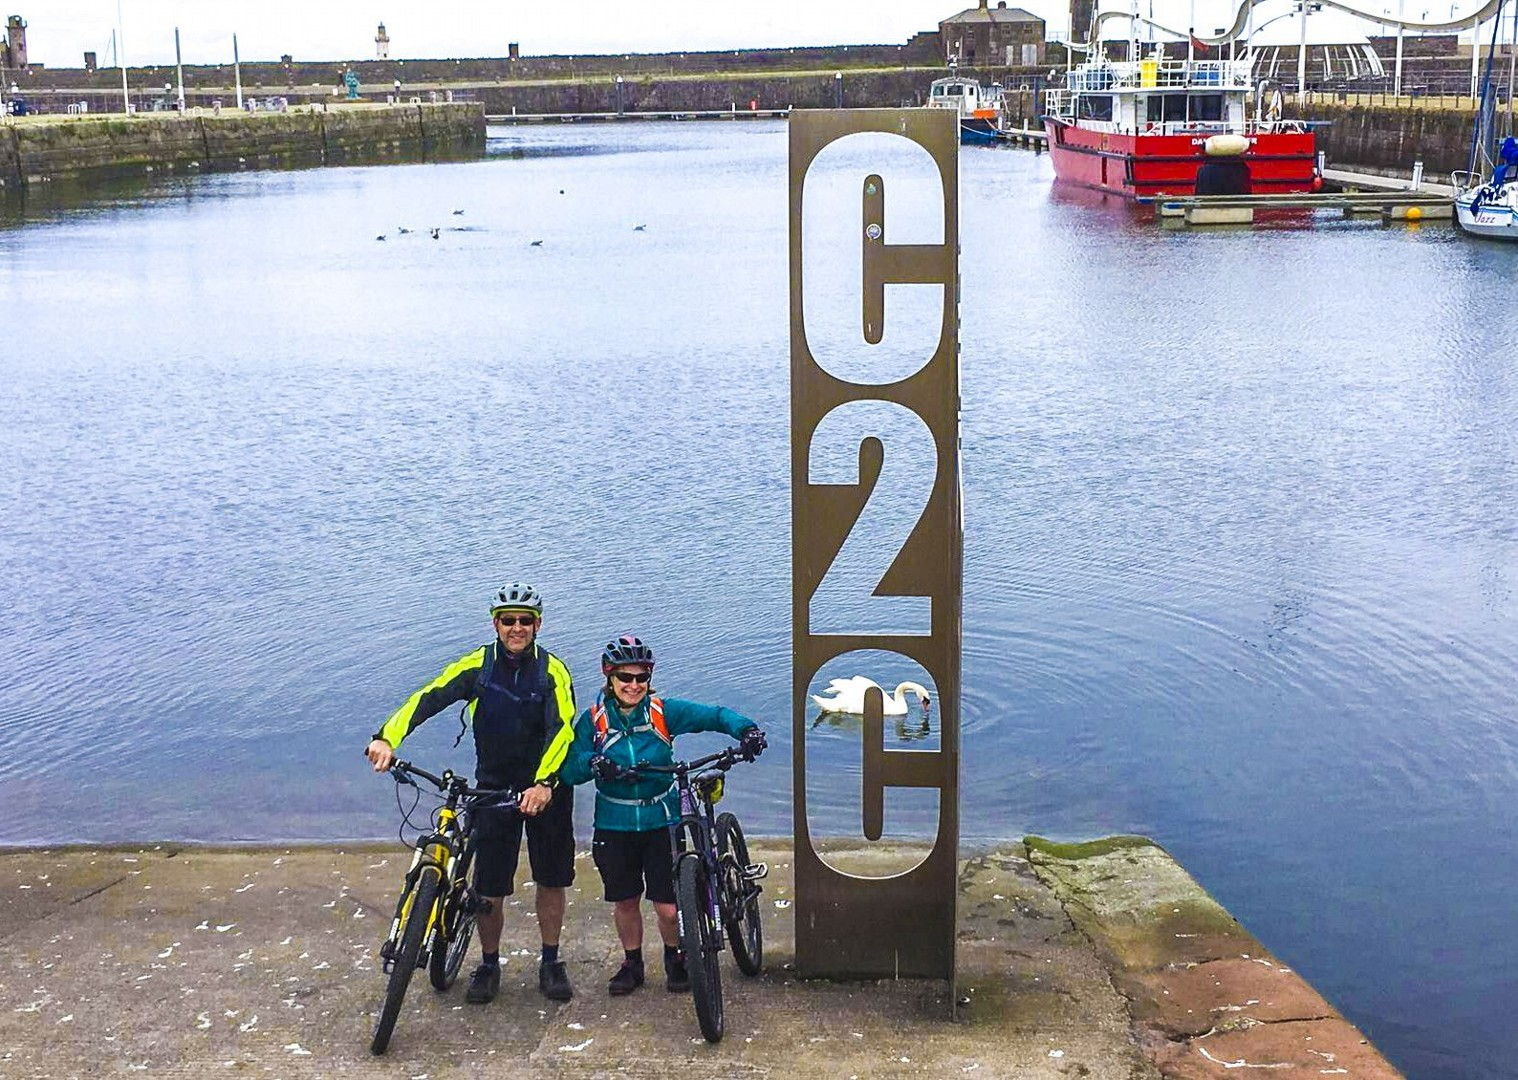 coast-to-coast-uk-whitehaven-to-newcastle-experience.jpg - UK - C2C - Coast to Coast - Supported Leisure Cycling Holiday - Leisure Cycling